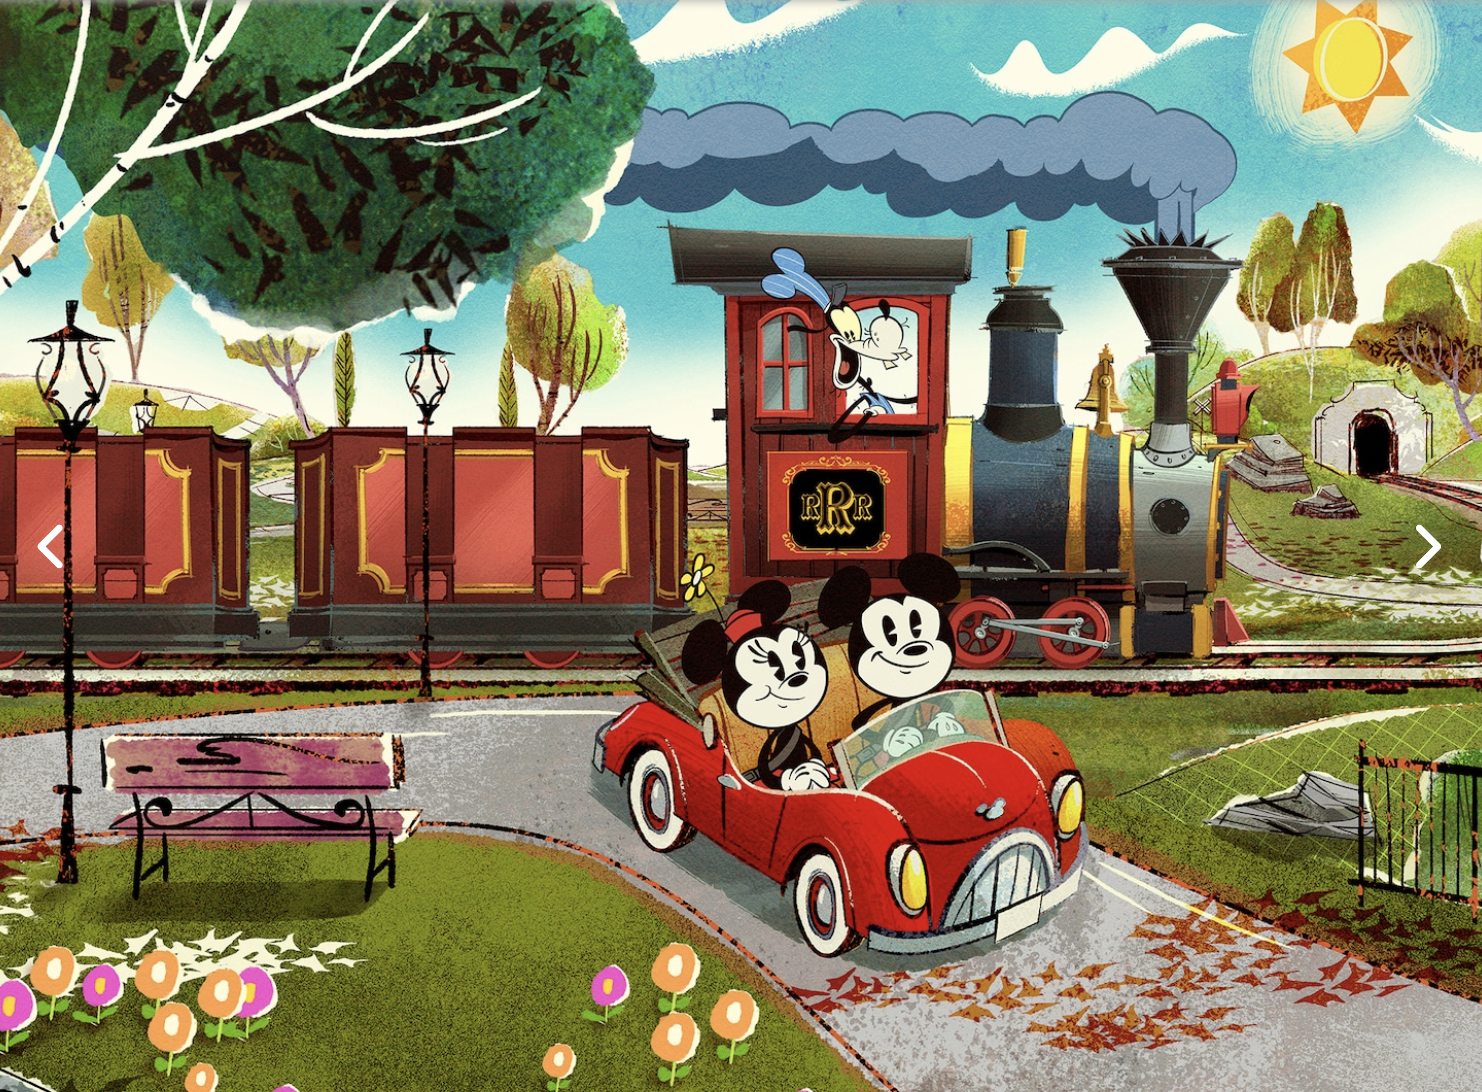 There's Finally an Opening Date for the First-Ever Mickey and Minnie Disney Ride